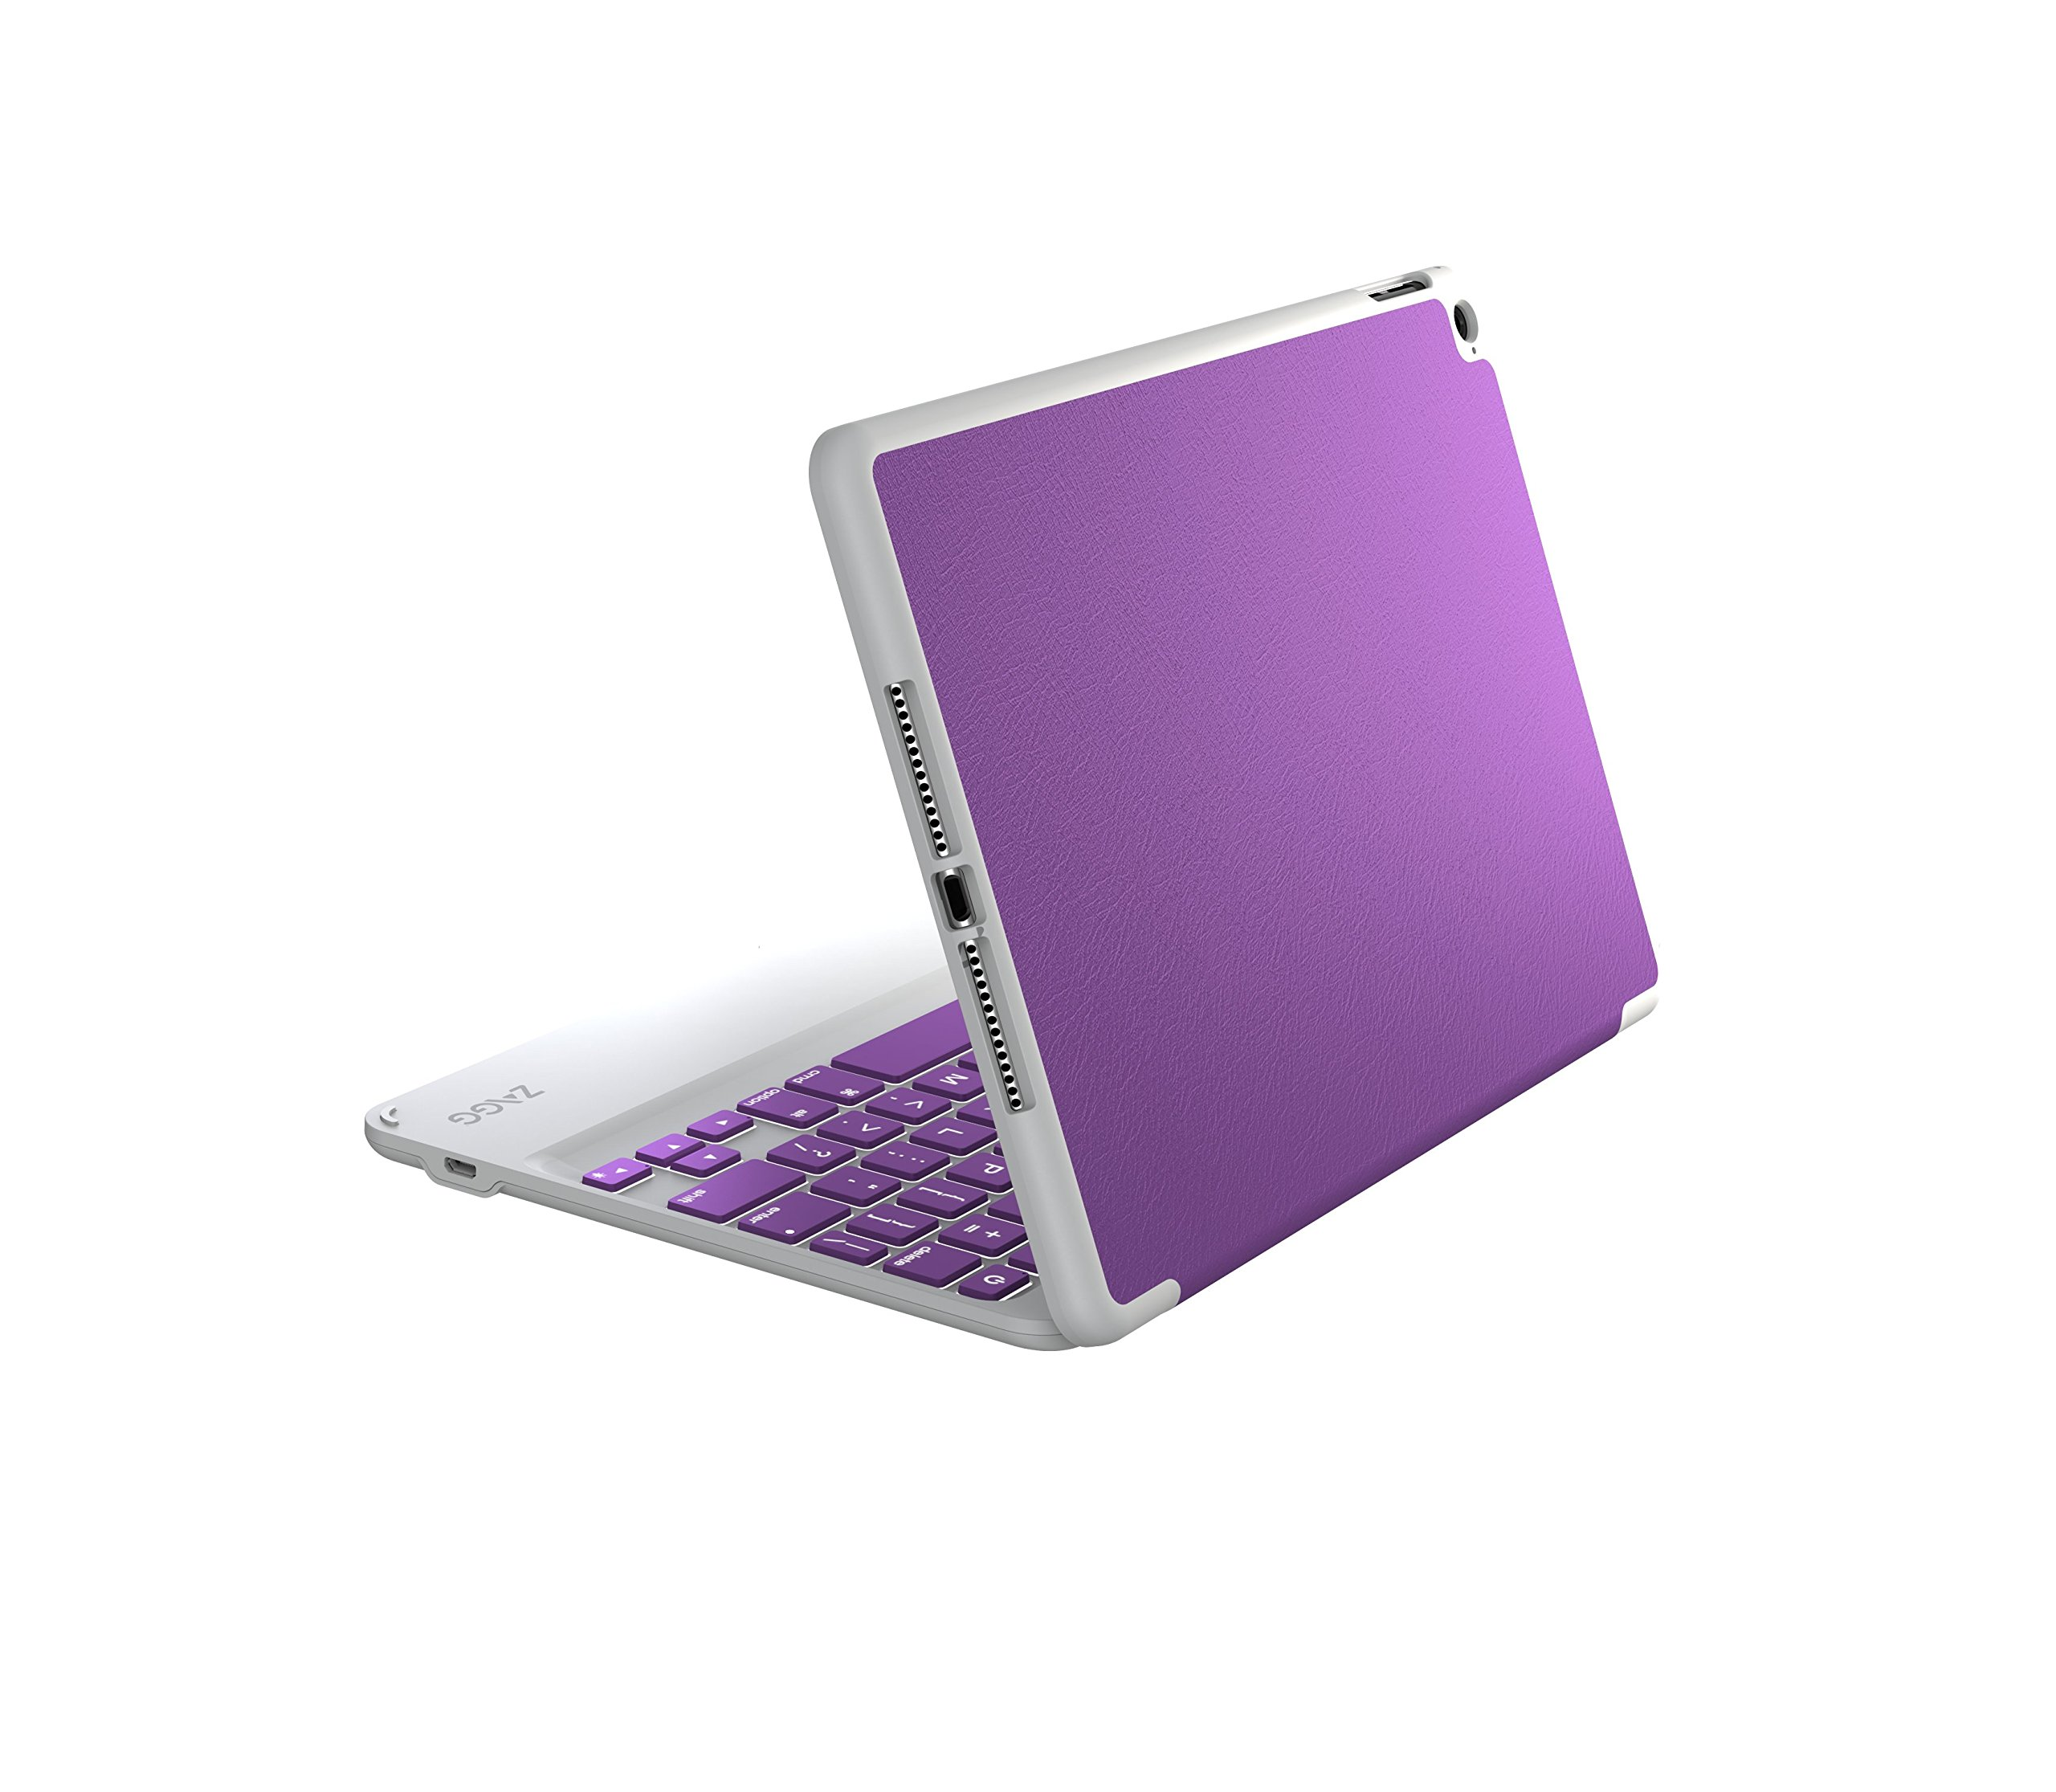 ZAGG Folio Case, Hinged with Backlit Bluetooth Keyboard for iPad Air 2 - Orchid